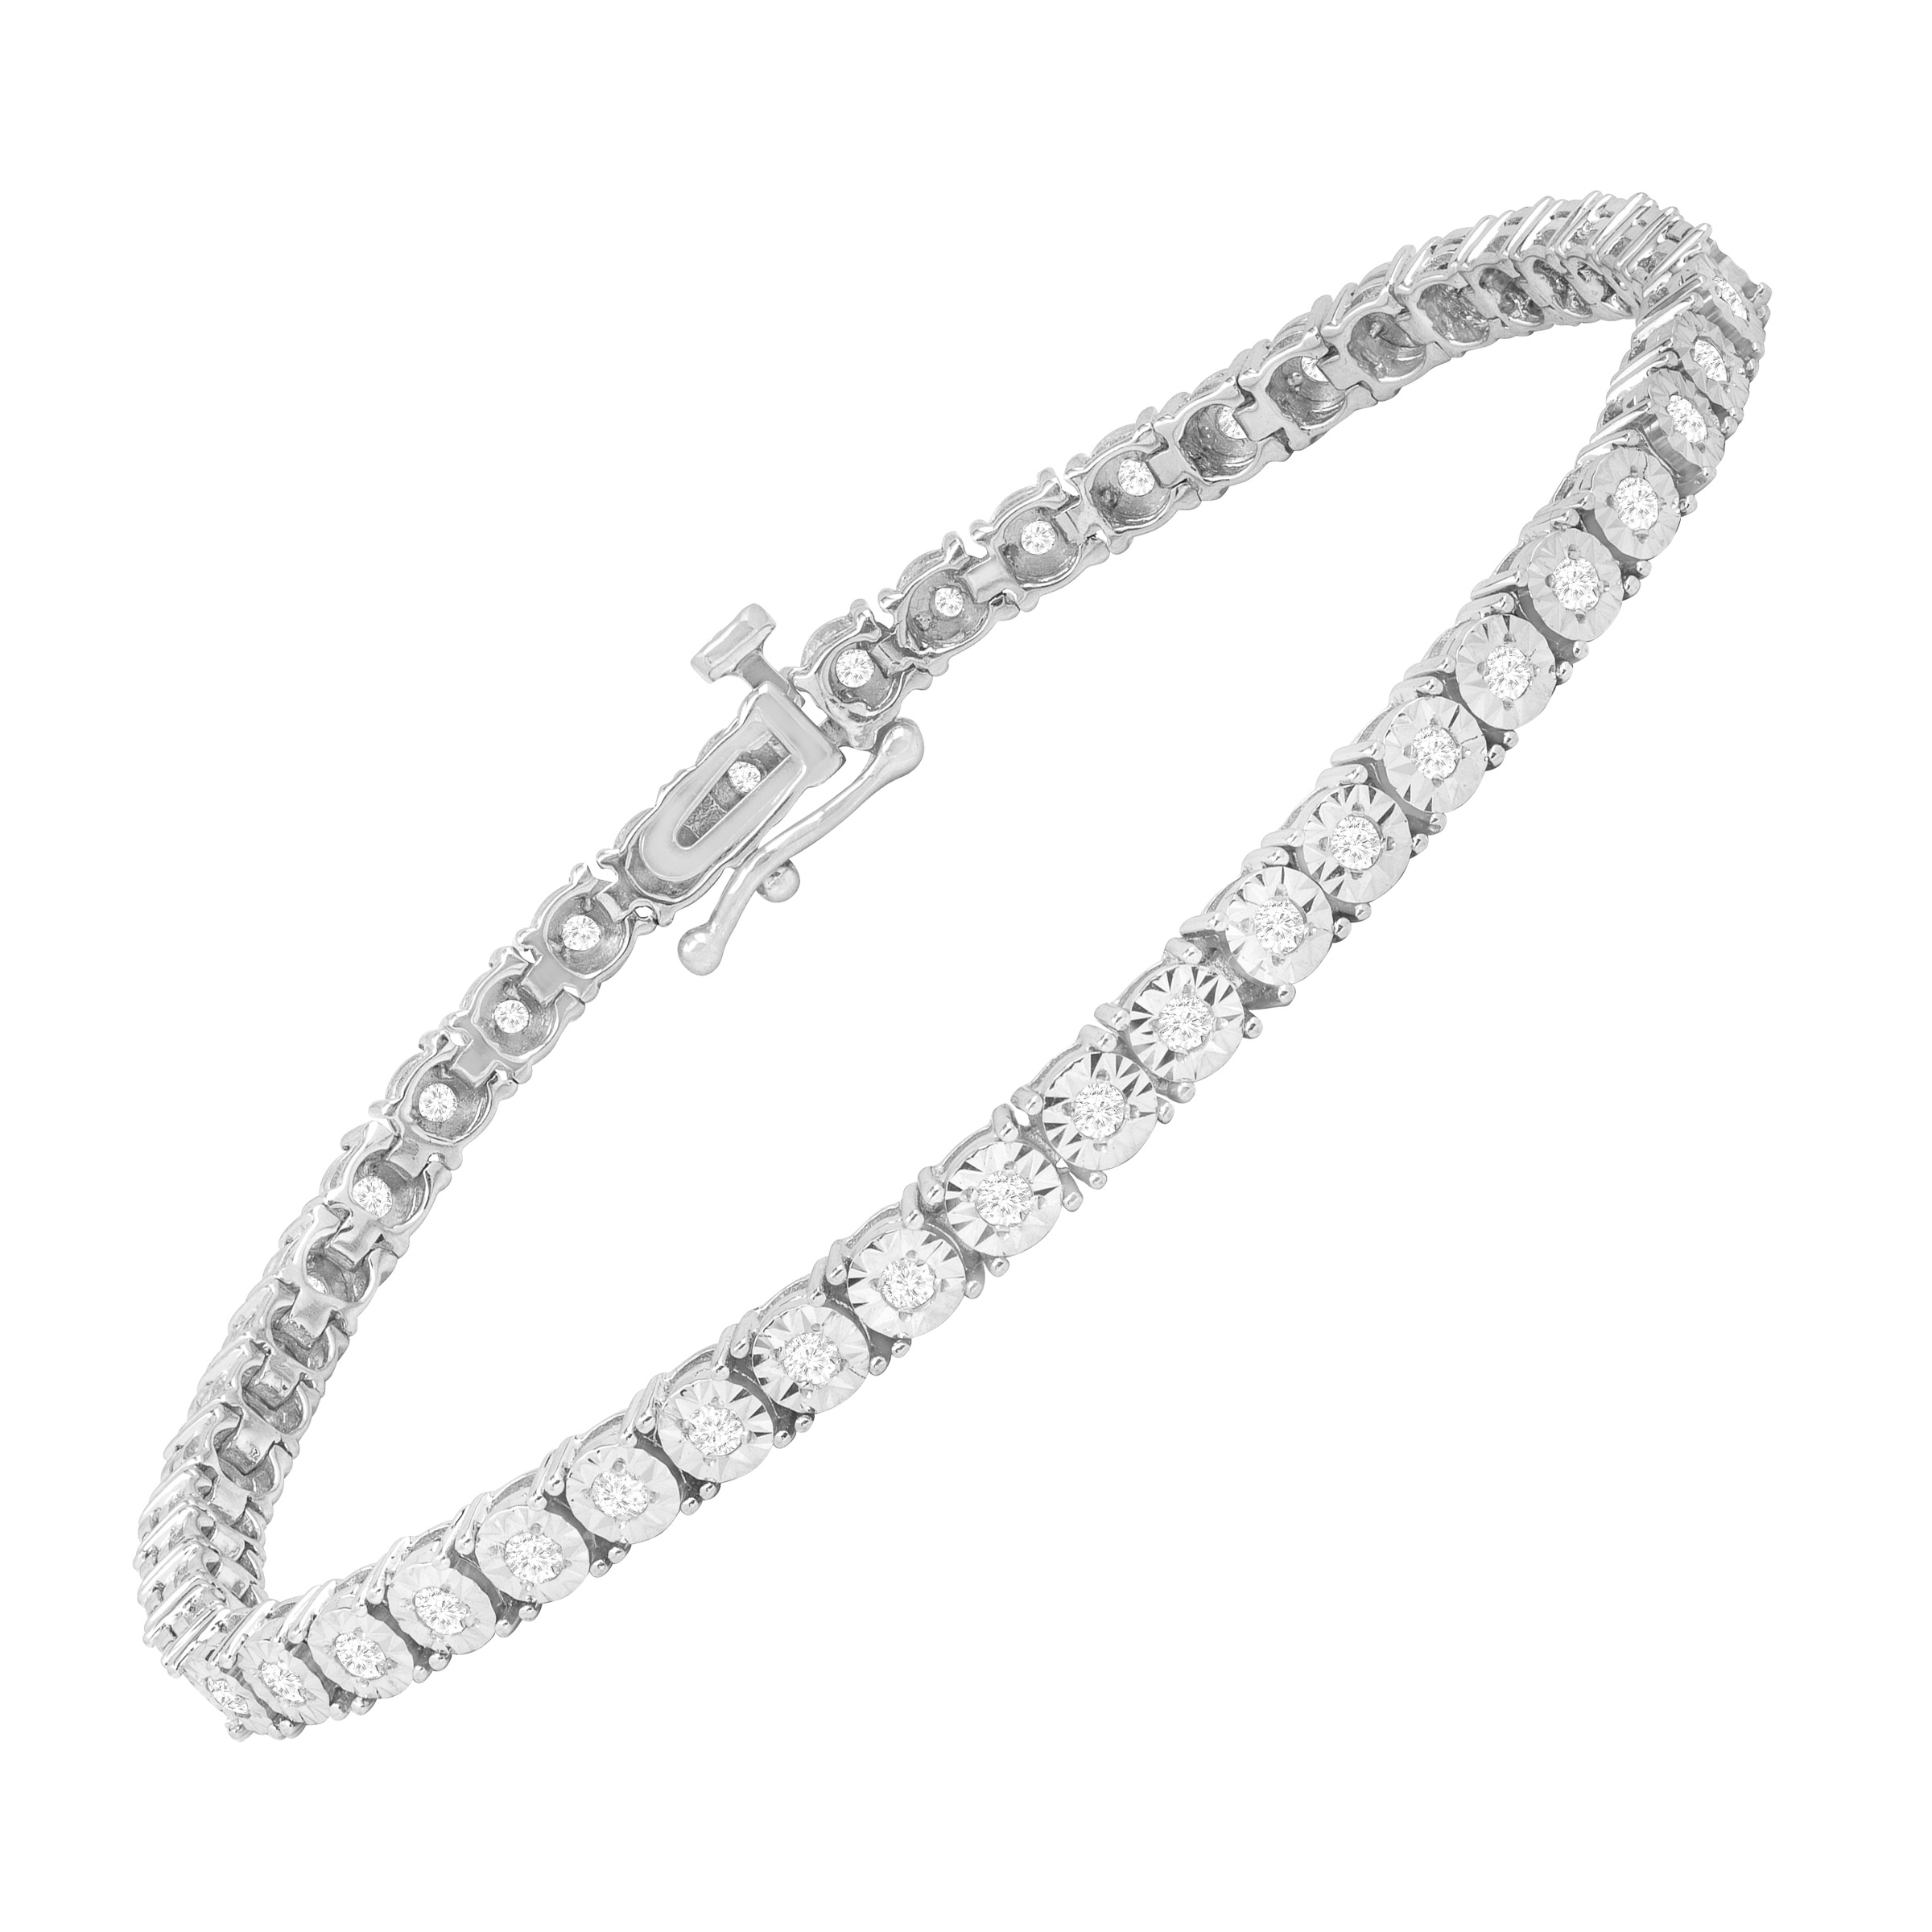 1 ct Diamond Tennis Bracelet in Sterling Silver by Richline Group